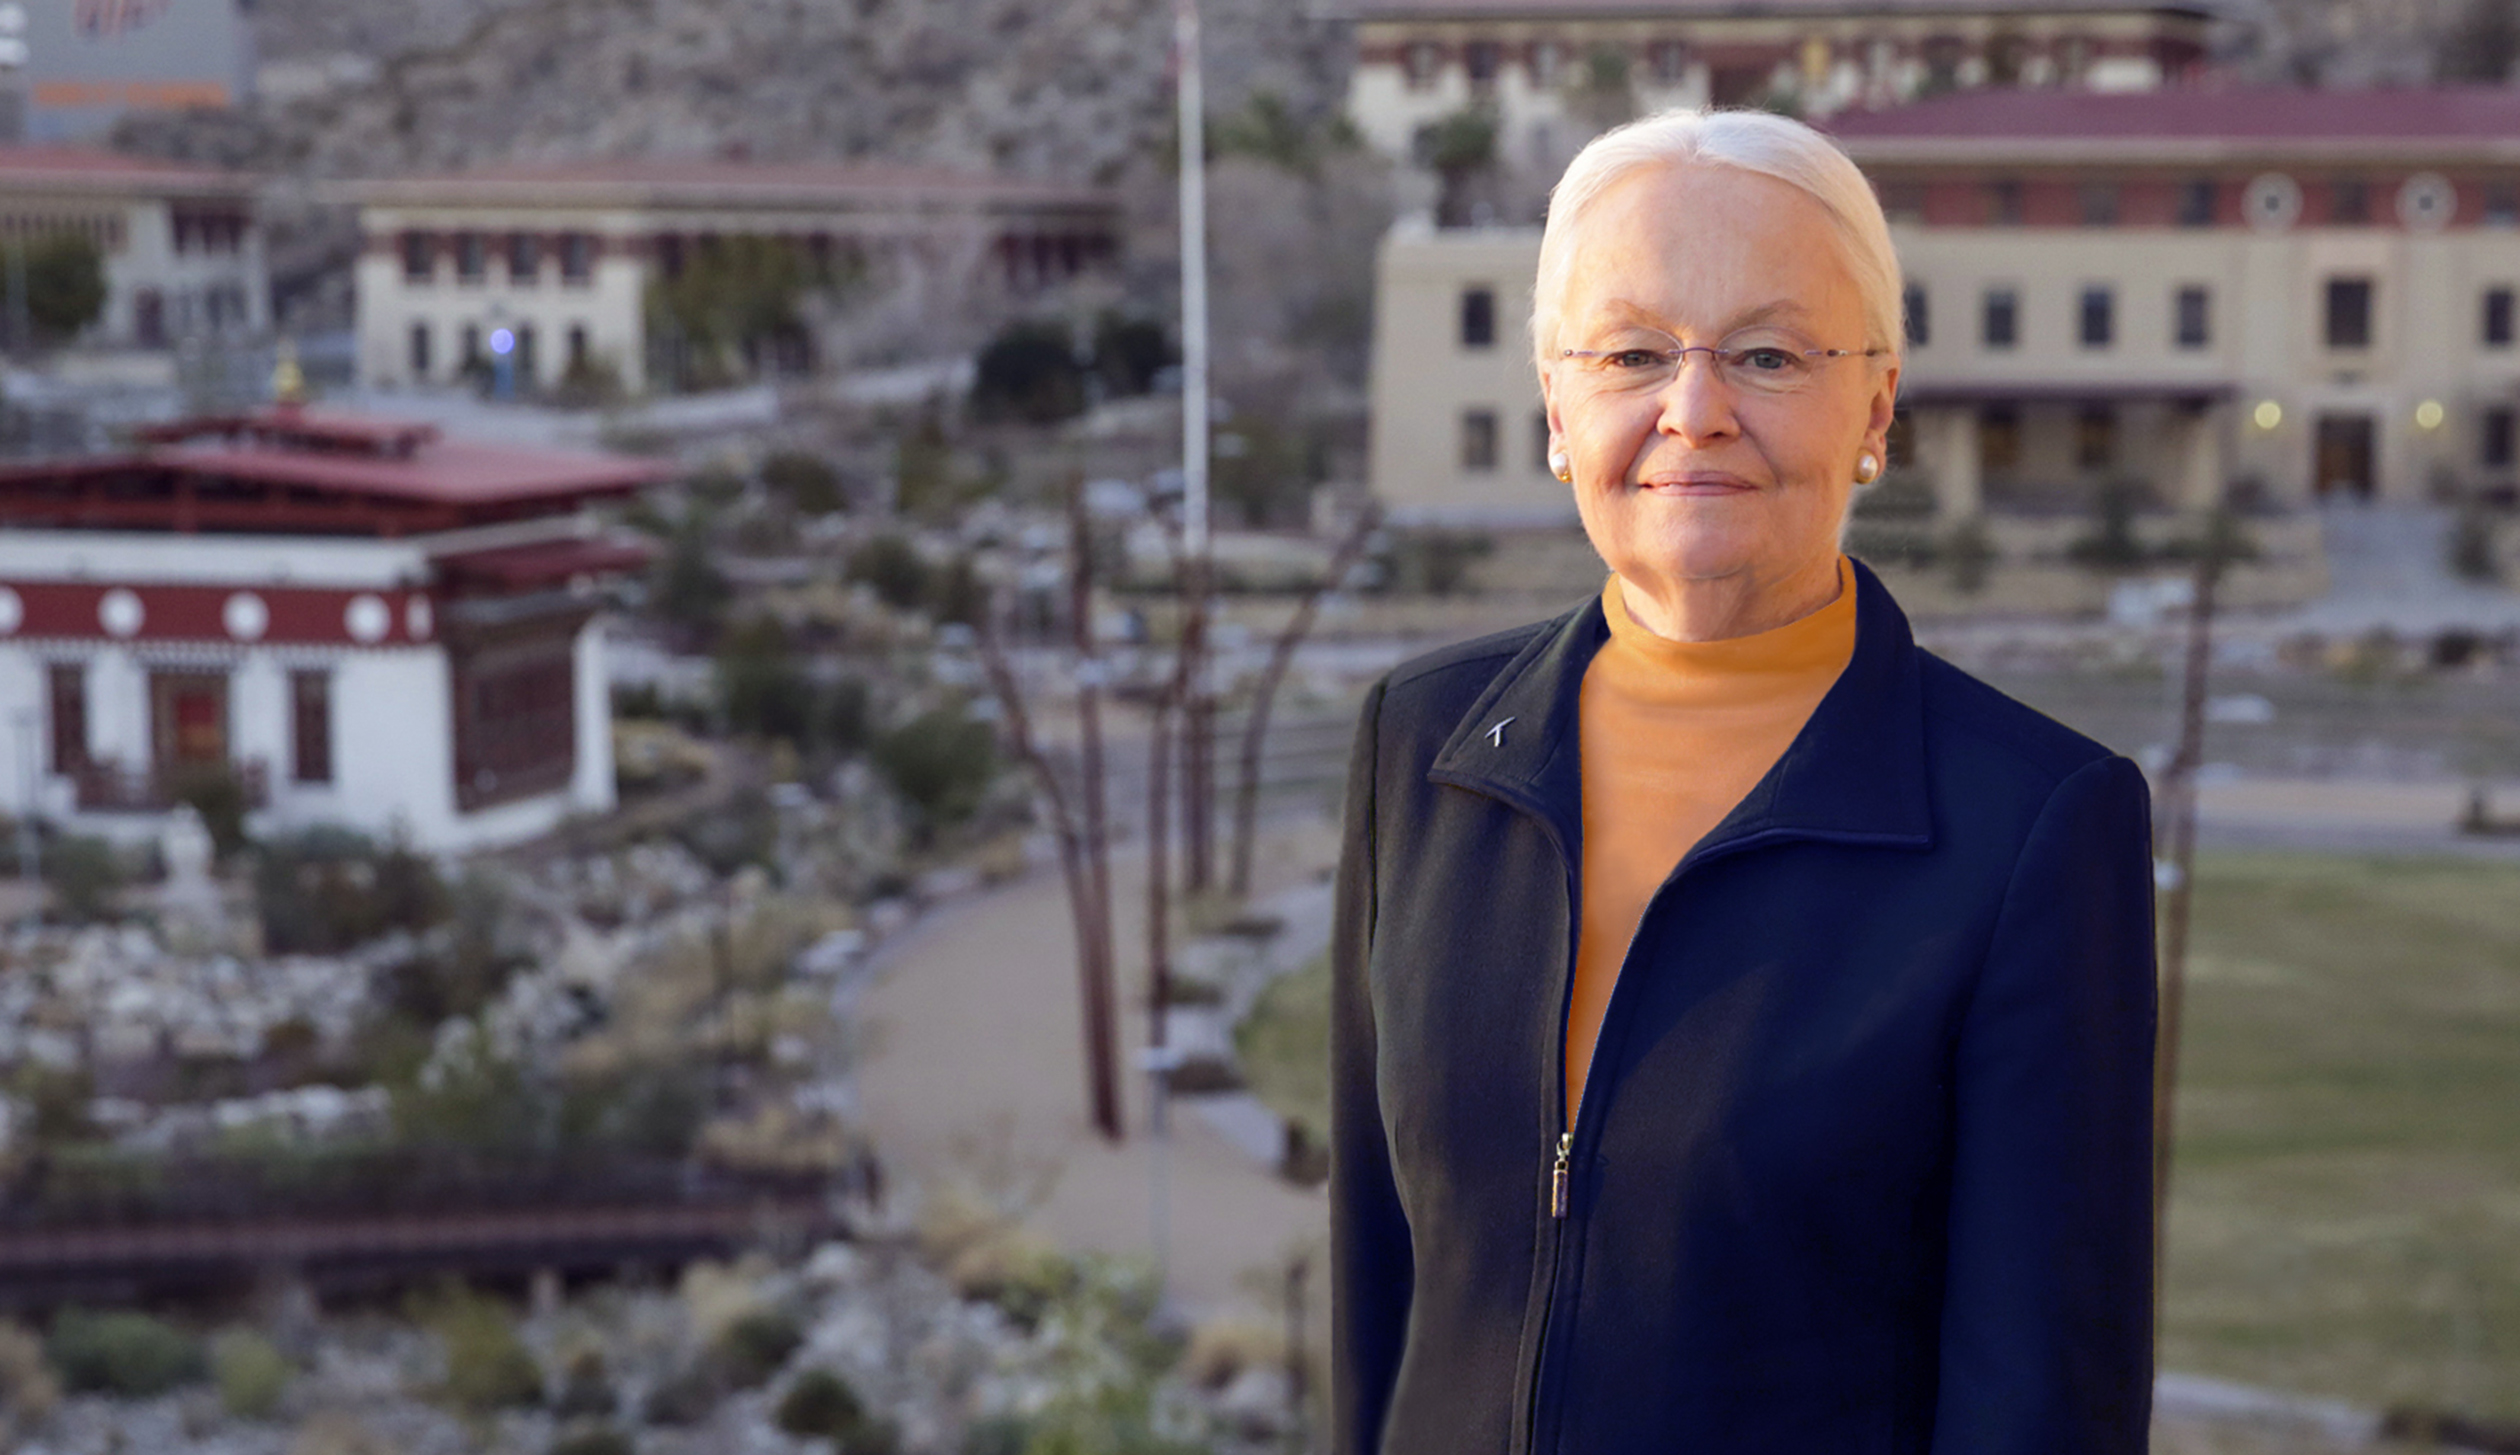 Dr. Diana Natalicio's photo shoot on the roof of the Admin Building, Thursday, December 17, 2015, in El Paso, Texas. Photo by Ivan Pierre Aguirre/UTEP Communications